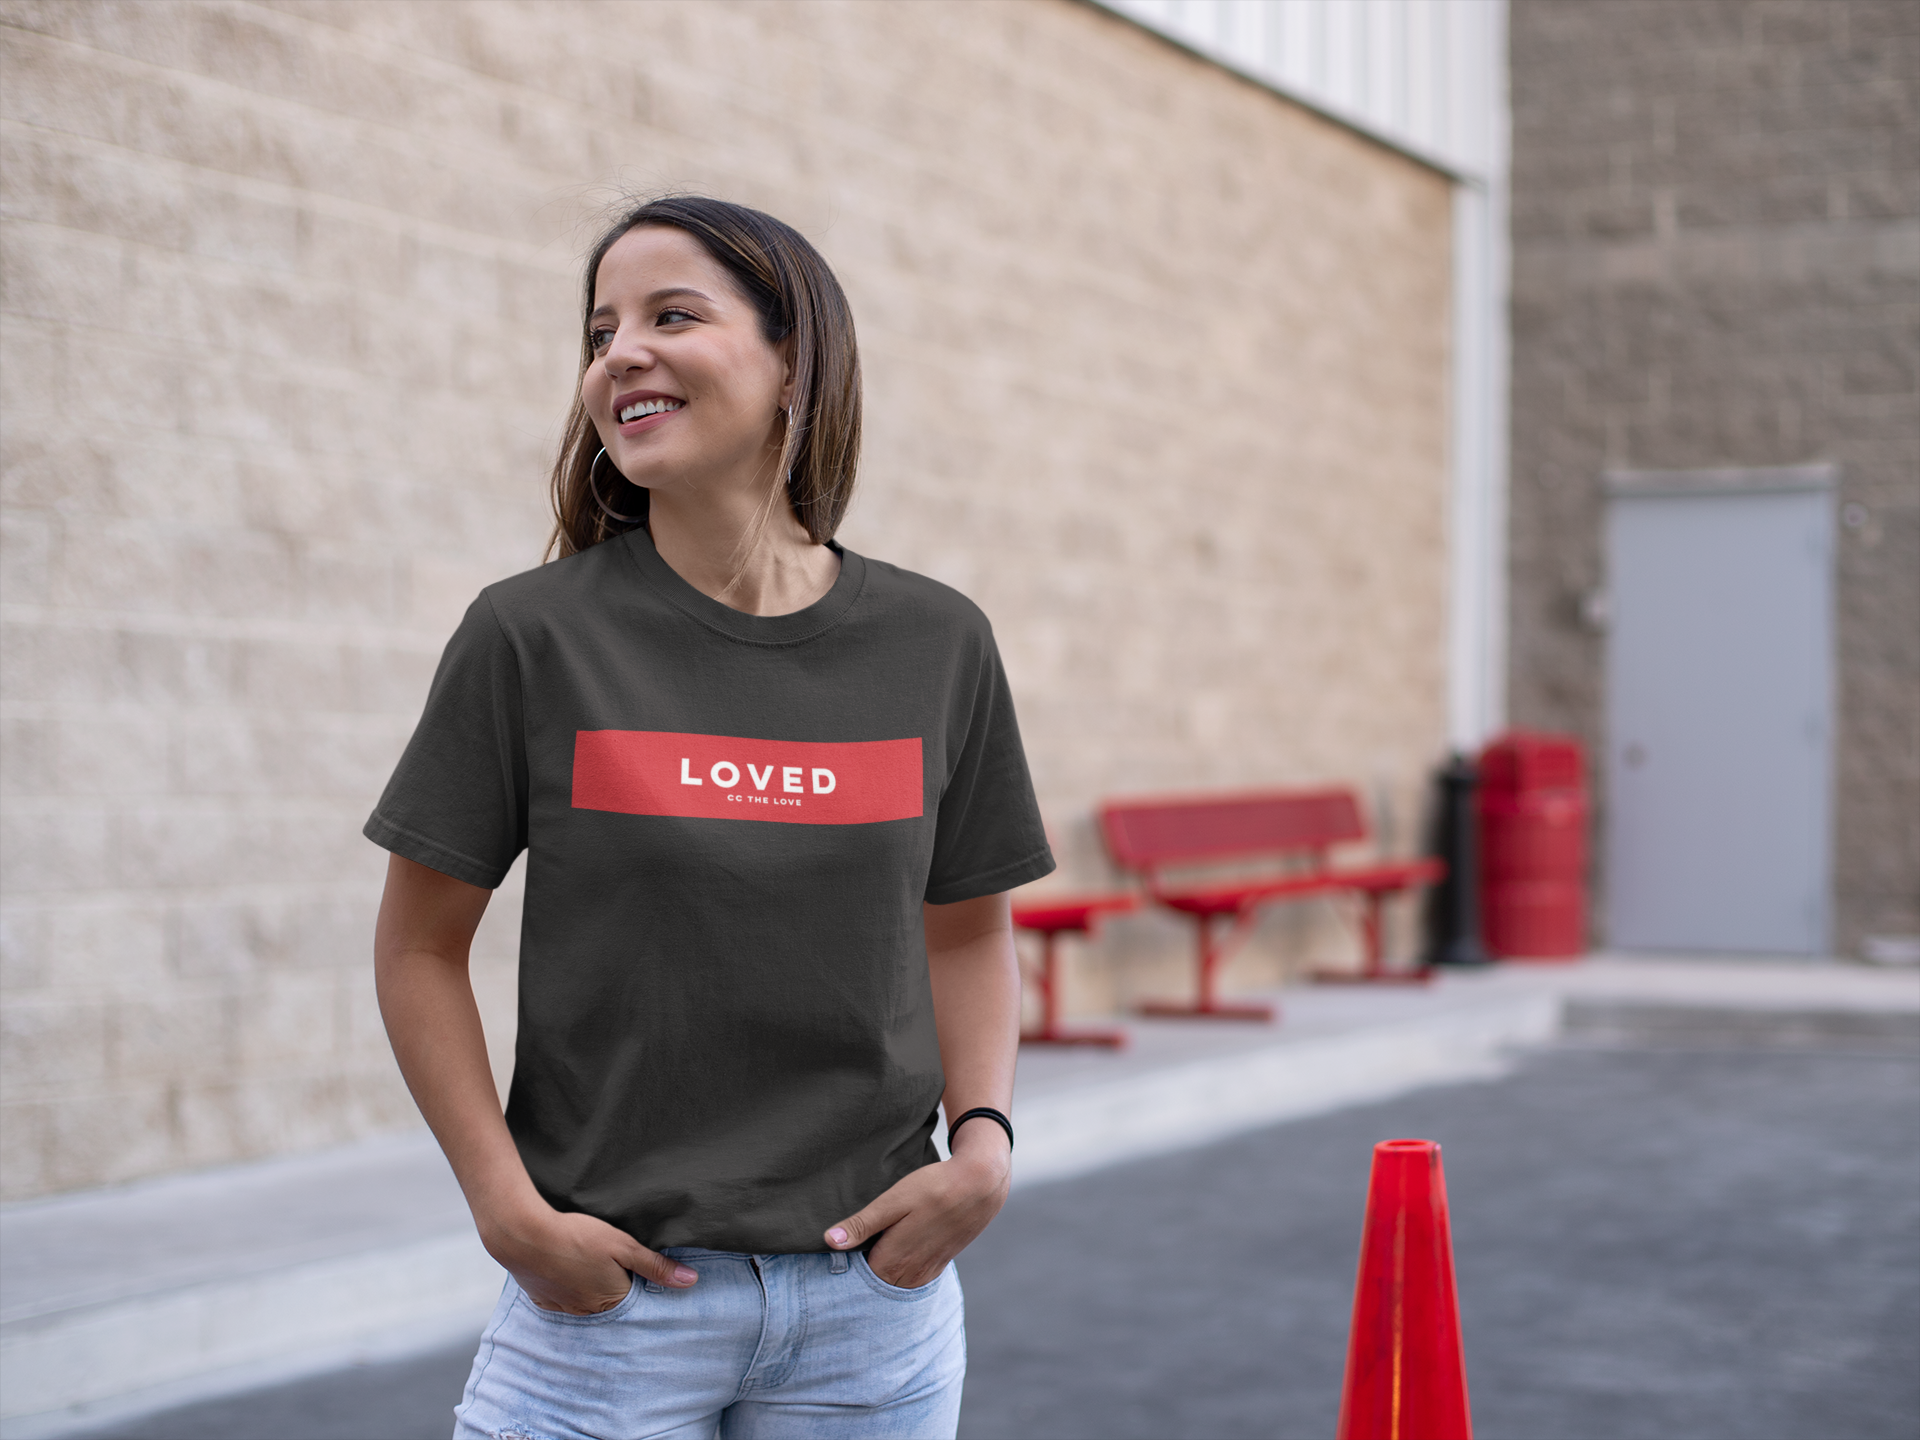 girl wearing CC The Love Loved tee outside department store